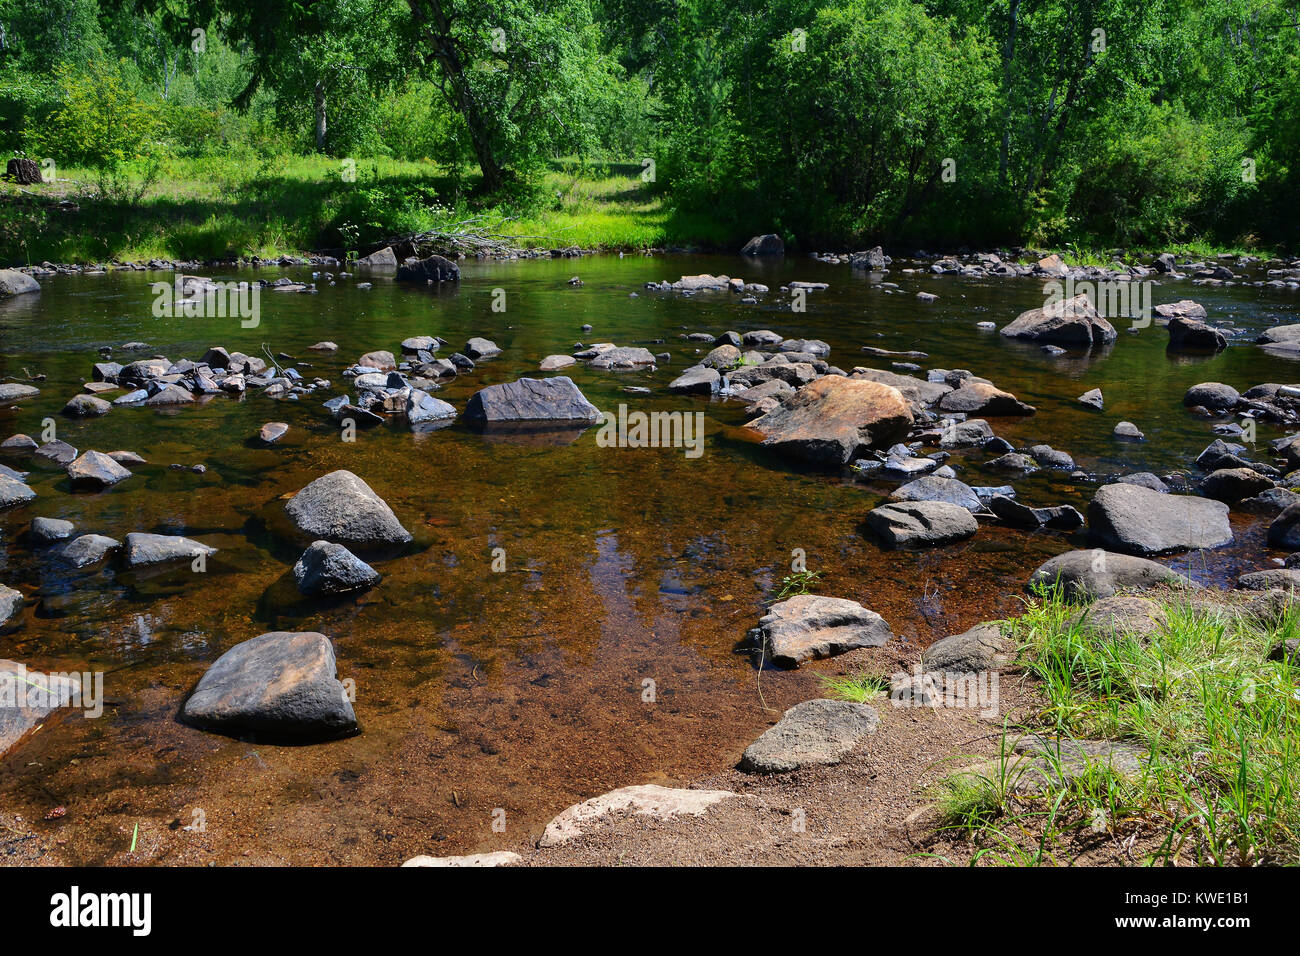 River bottom with stones in transparent water - Stock Image